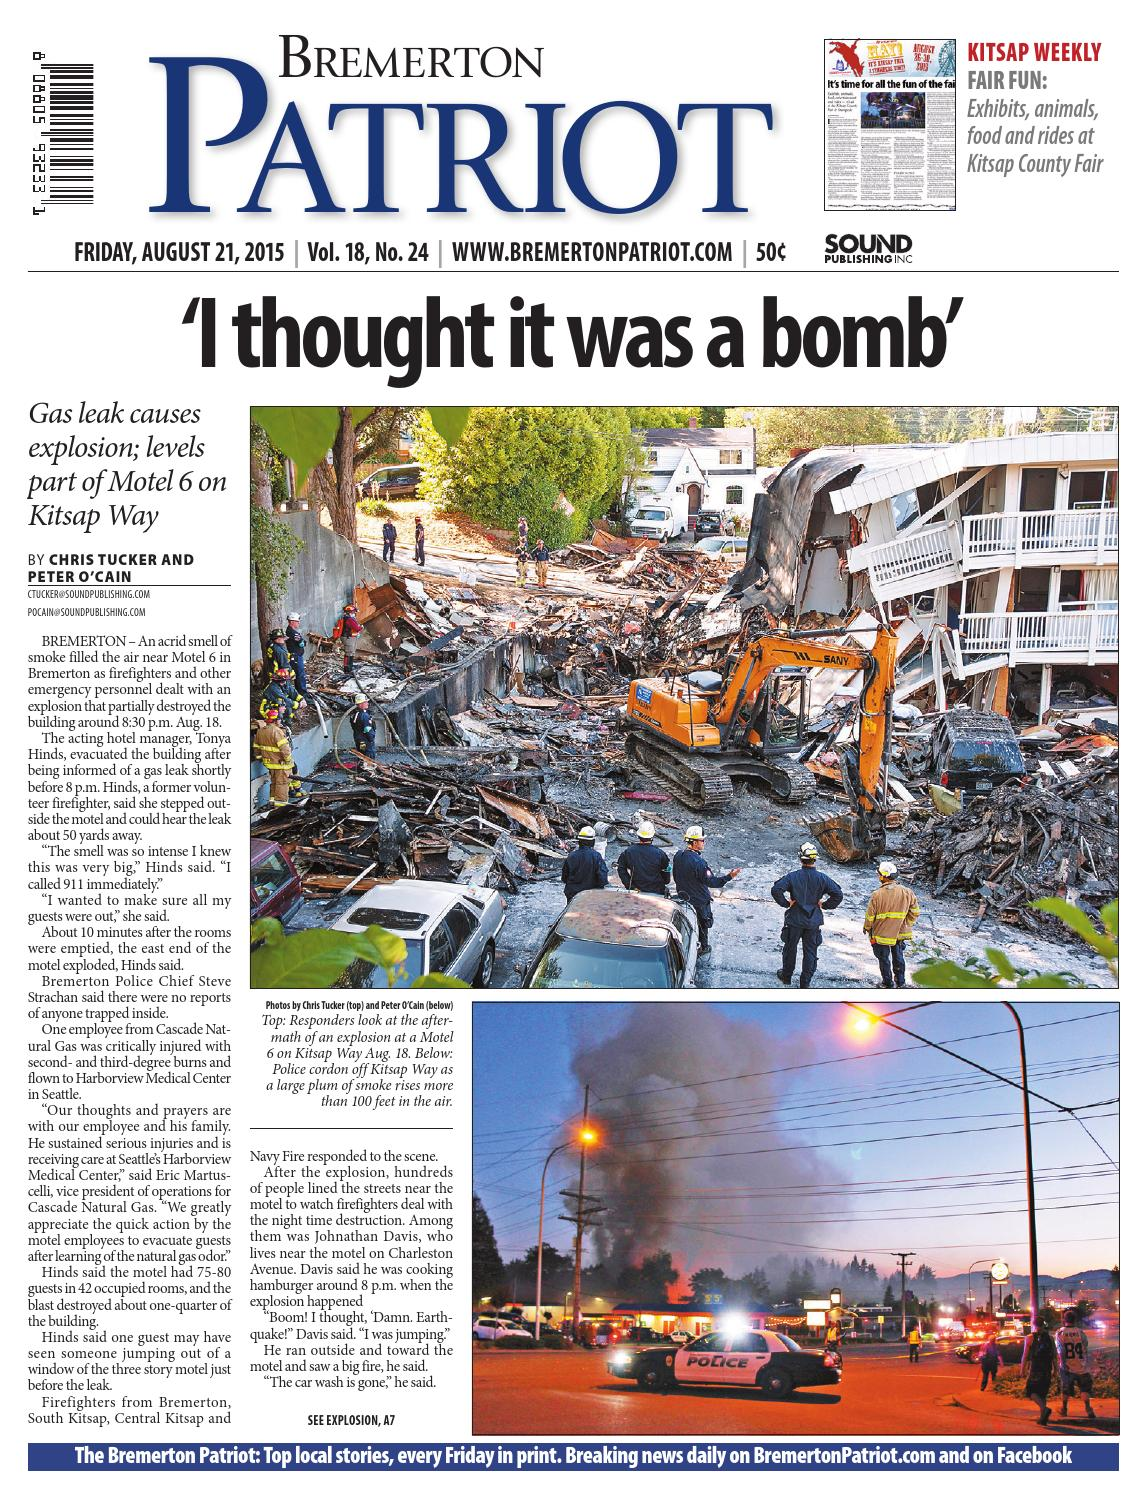 Bremerton Patriot, August 21, 2015 by Sound Publishing - issuu